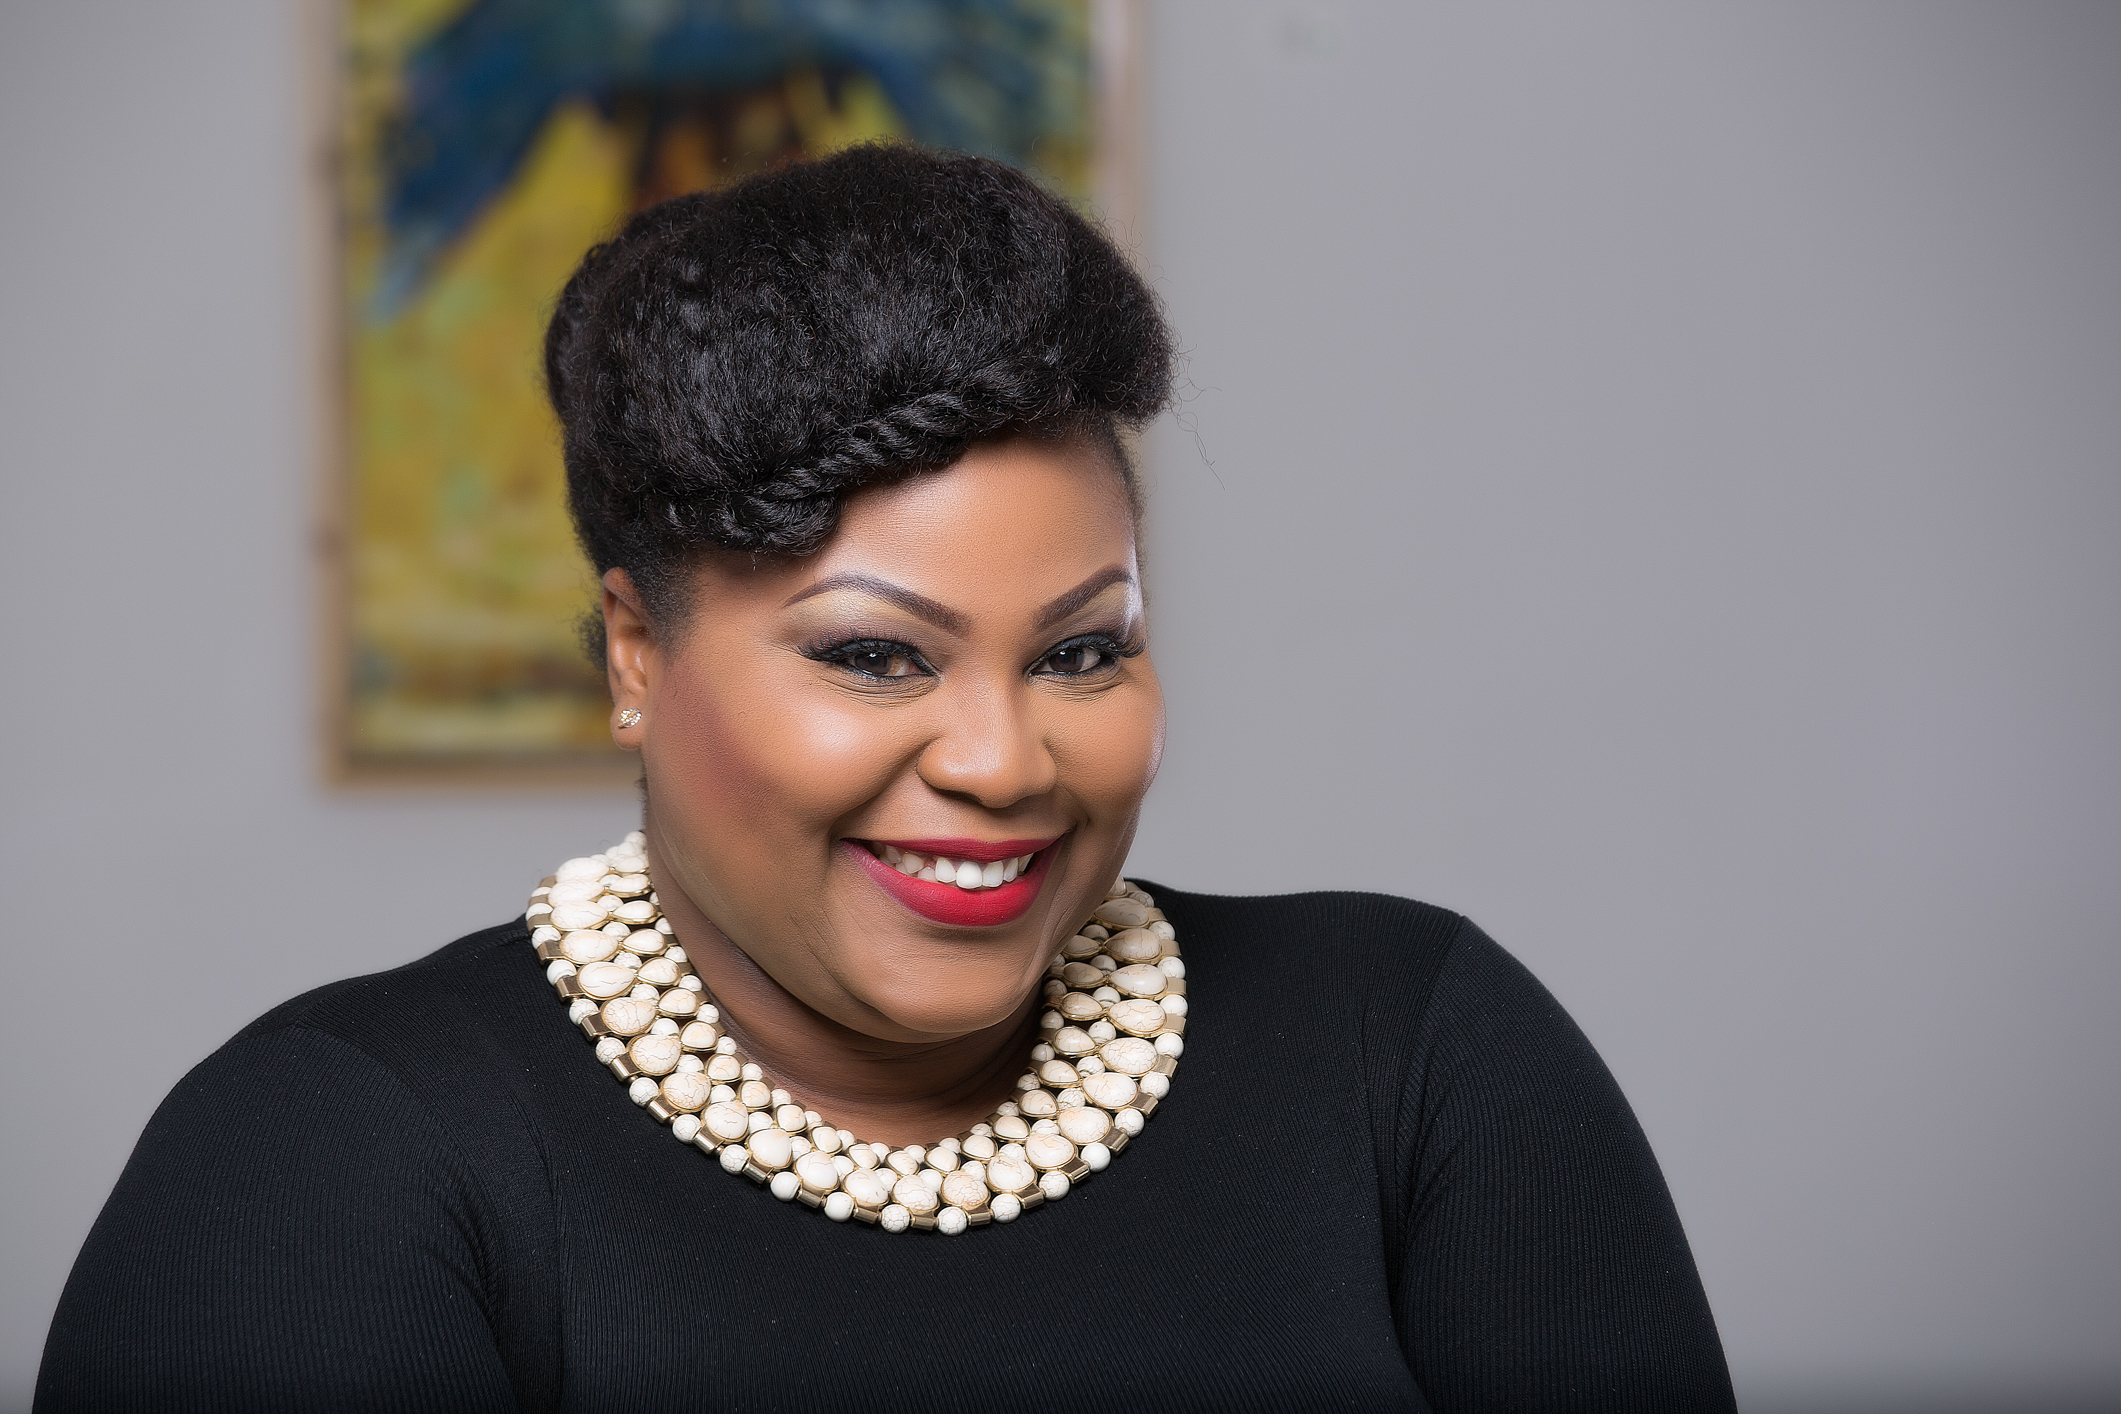 Photo of 10 Things You Didn't Know About Wana Wana